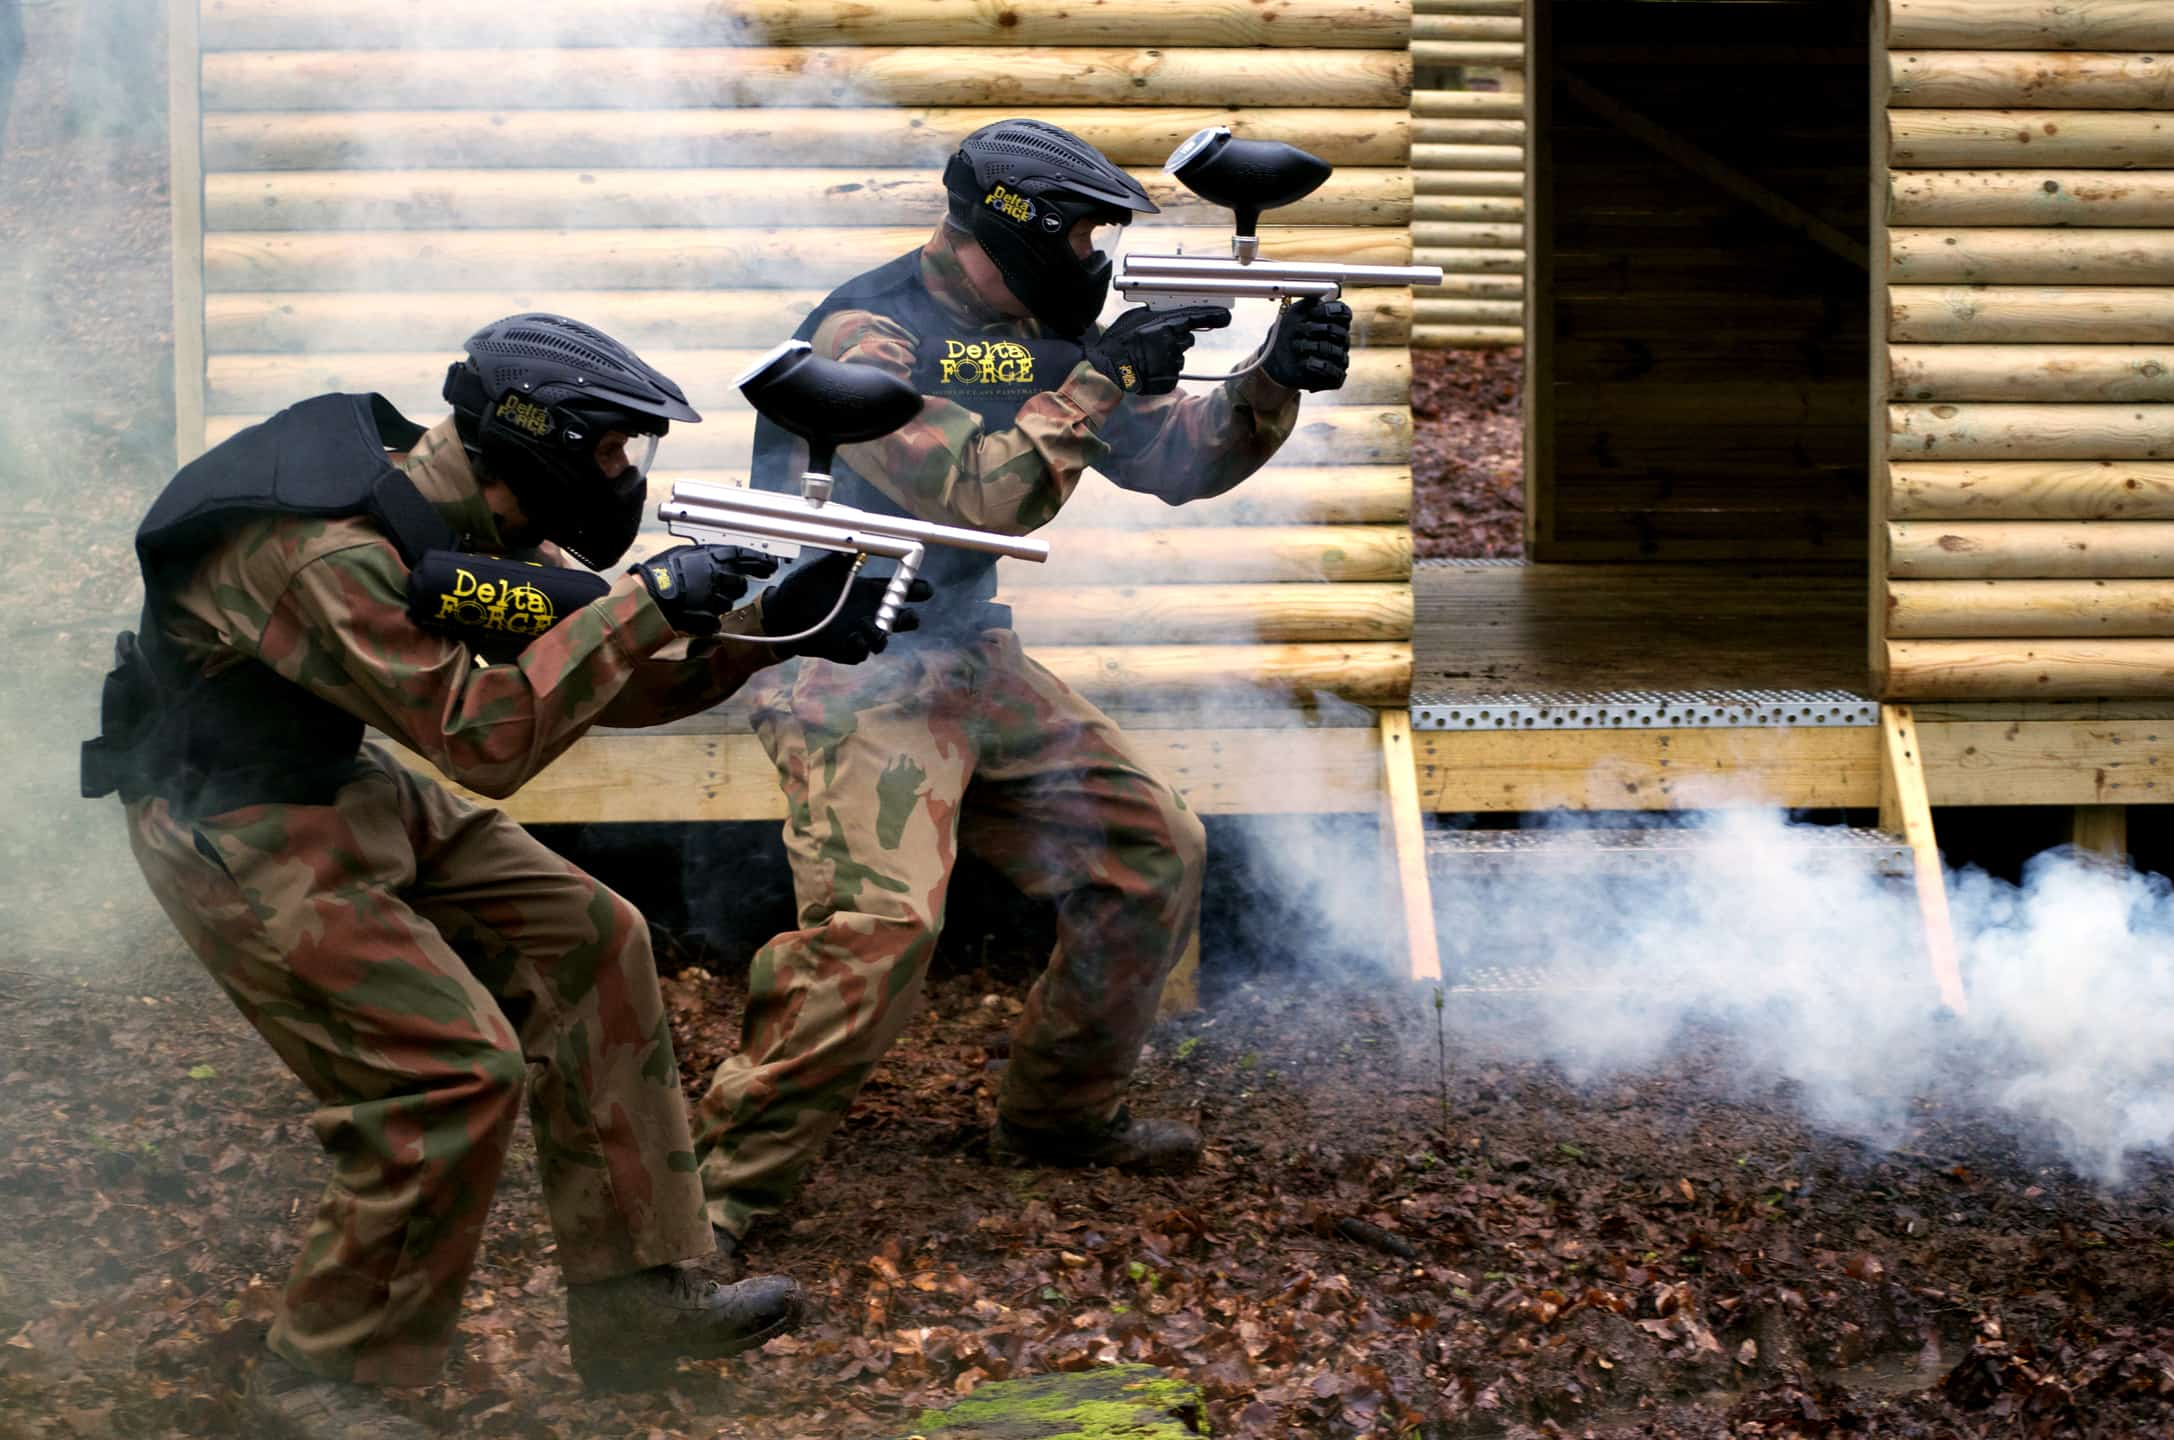 Two Paintball Players Advance on Hut Doorway in Hampshire Paintball